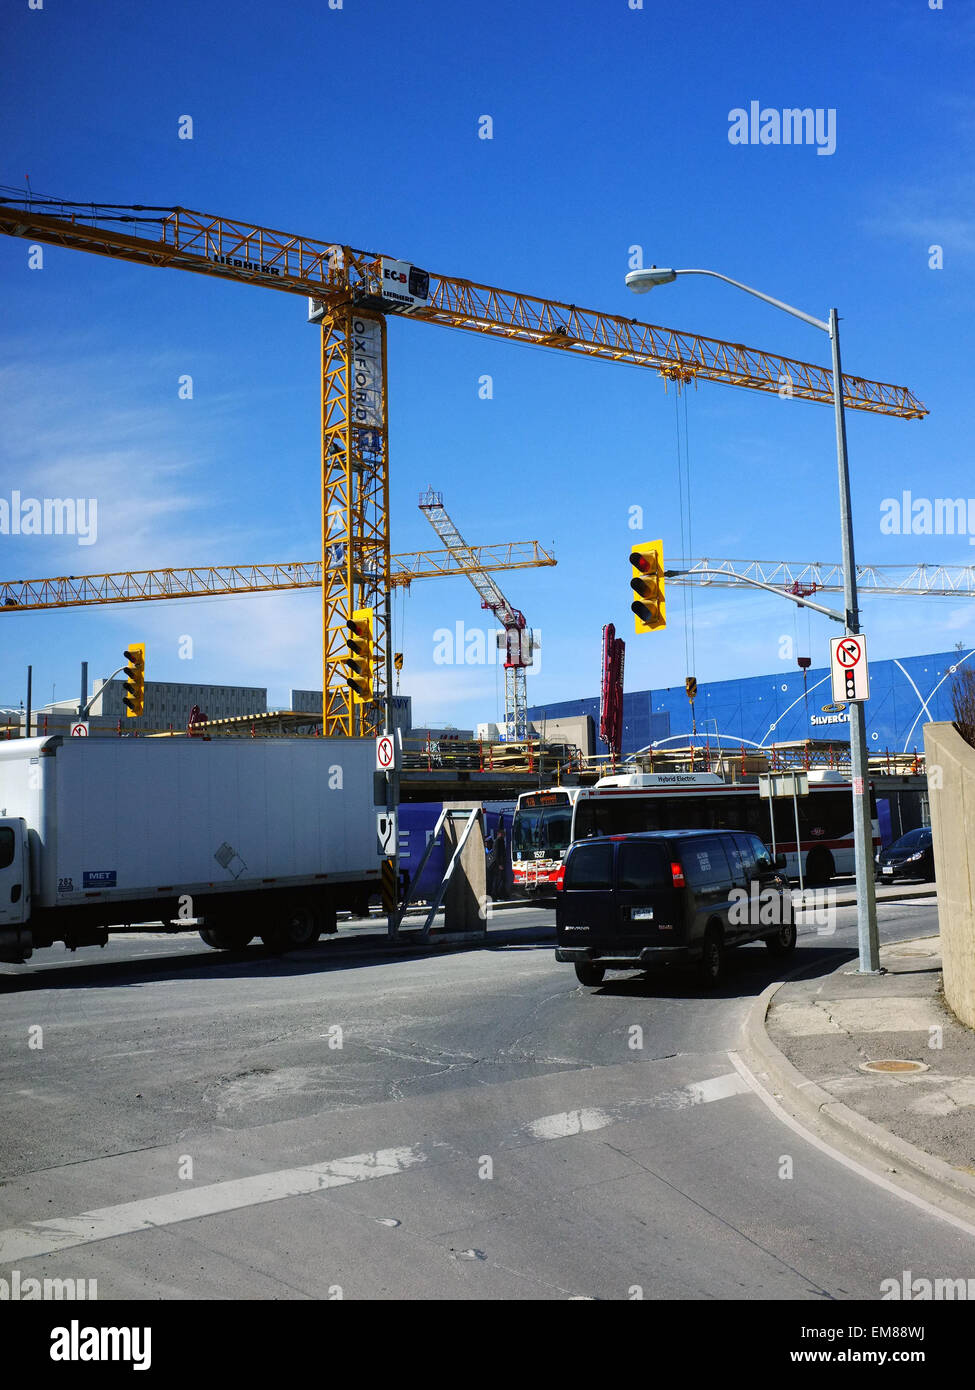 Cars drive past large tower cranes on the outskirts of Toronto in Canada. - Stock Image